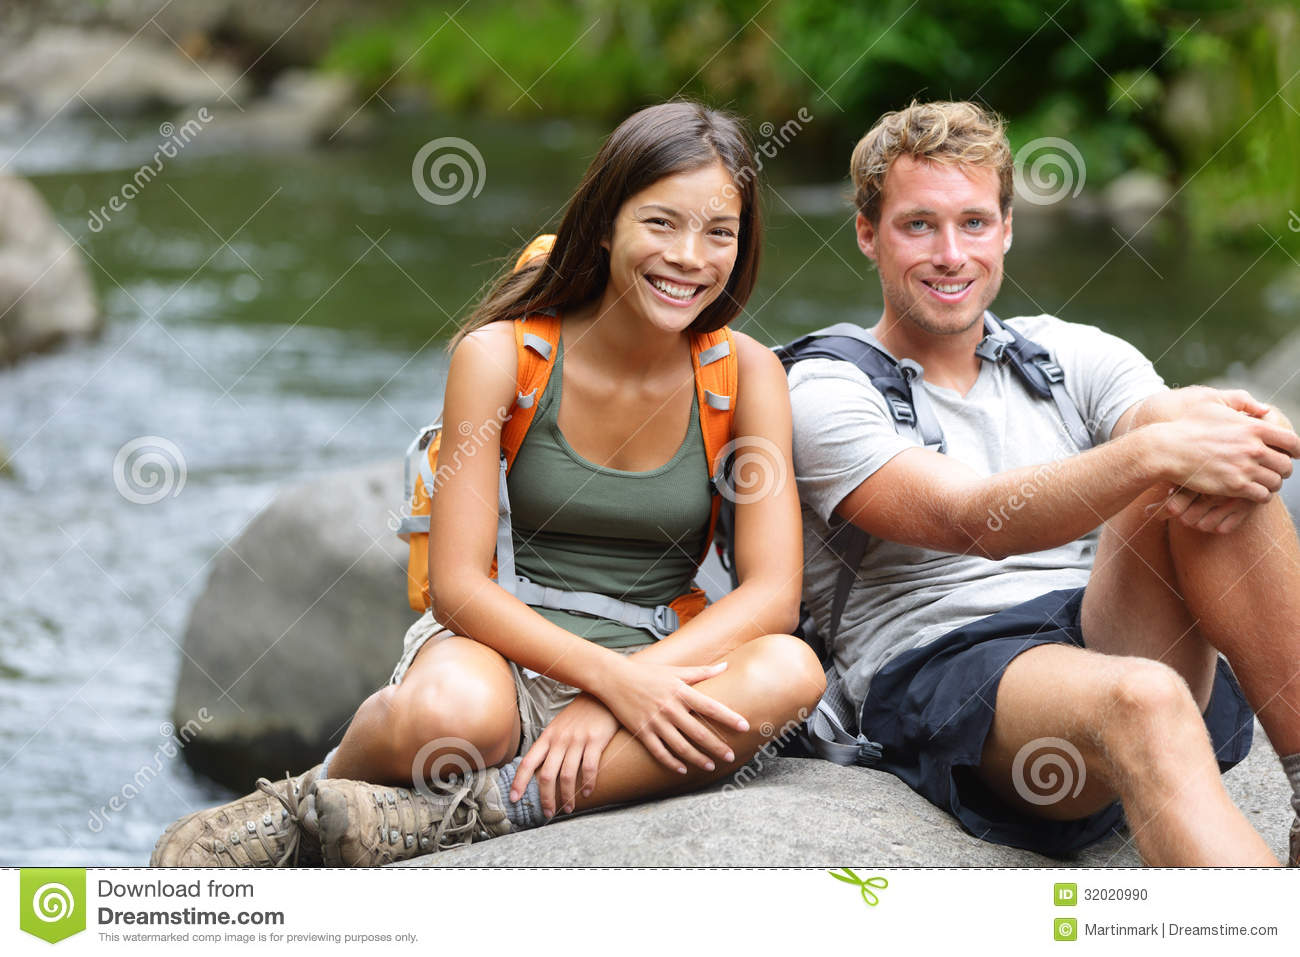 hiking the appalachian trail map with Stock Photo People Hiking Resting Hikers Portrait River Women Men Hiker Looking Camera Smiling Happy Hike Iao Image32020990 on Index further I0000GM U9q1XIo together with Trails Pacific Crest Trail together with Index furthermore Franconia Ridge.